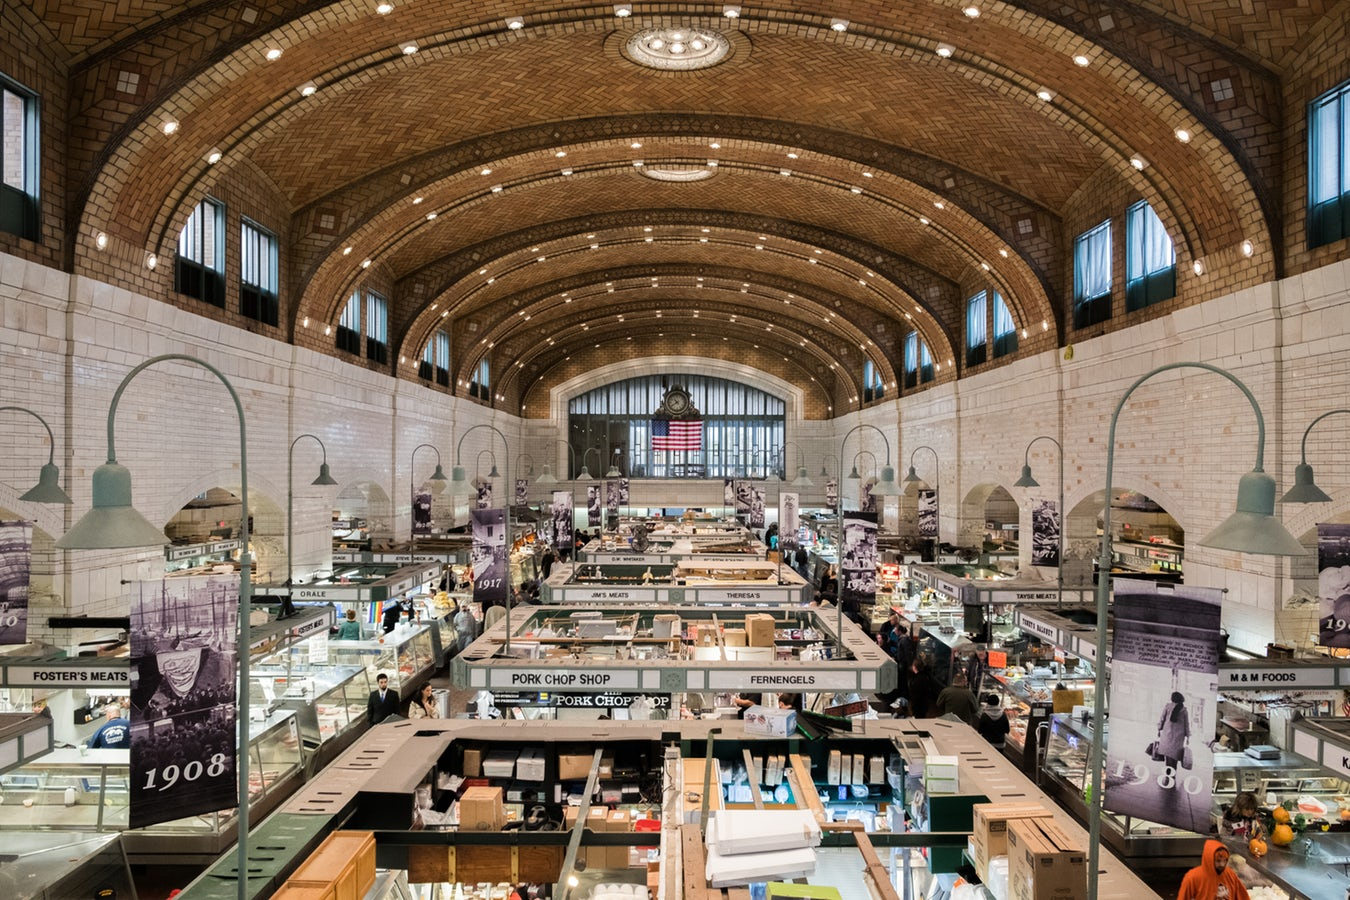 West Side Market in Cleveland Ohio